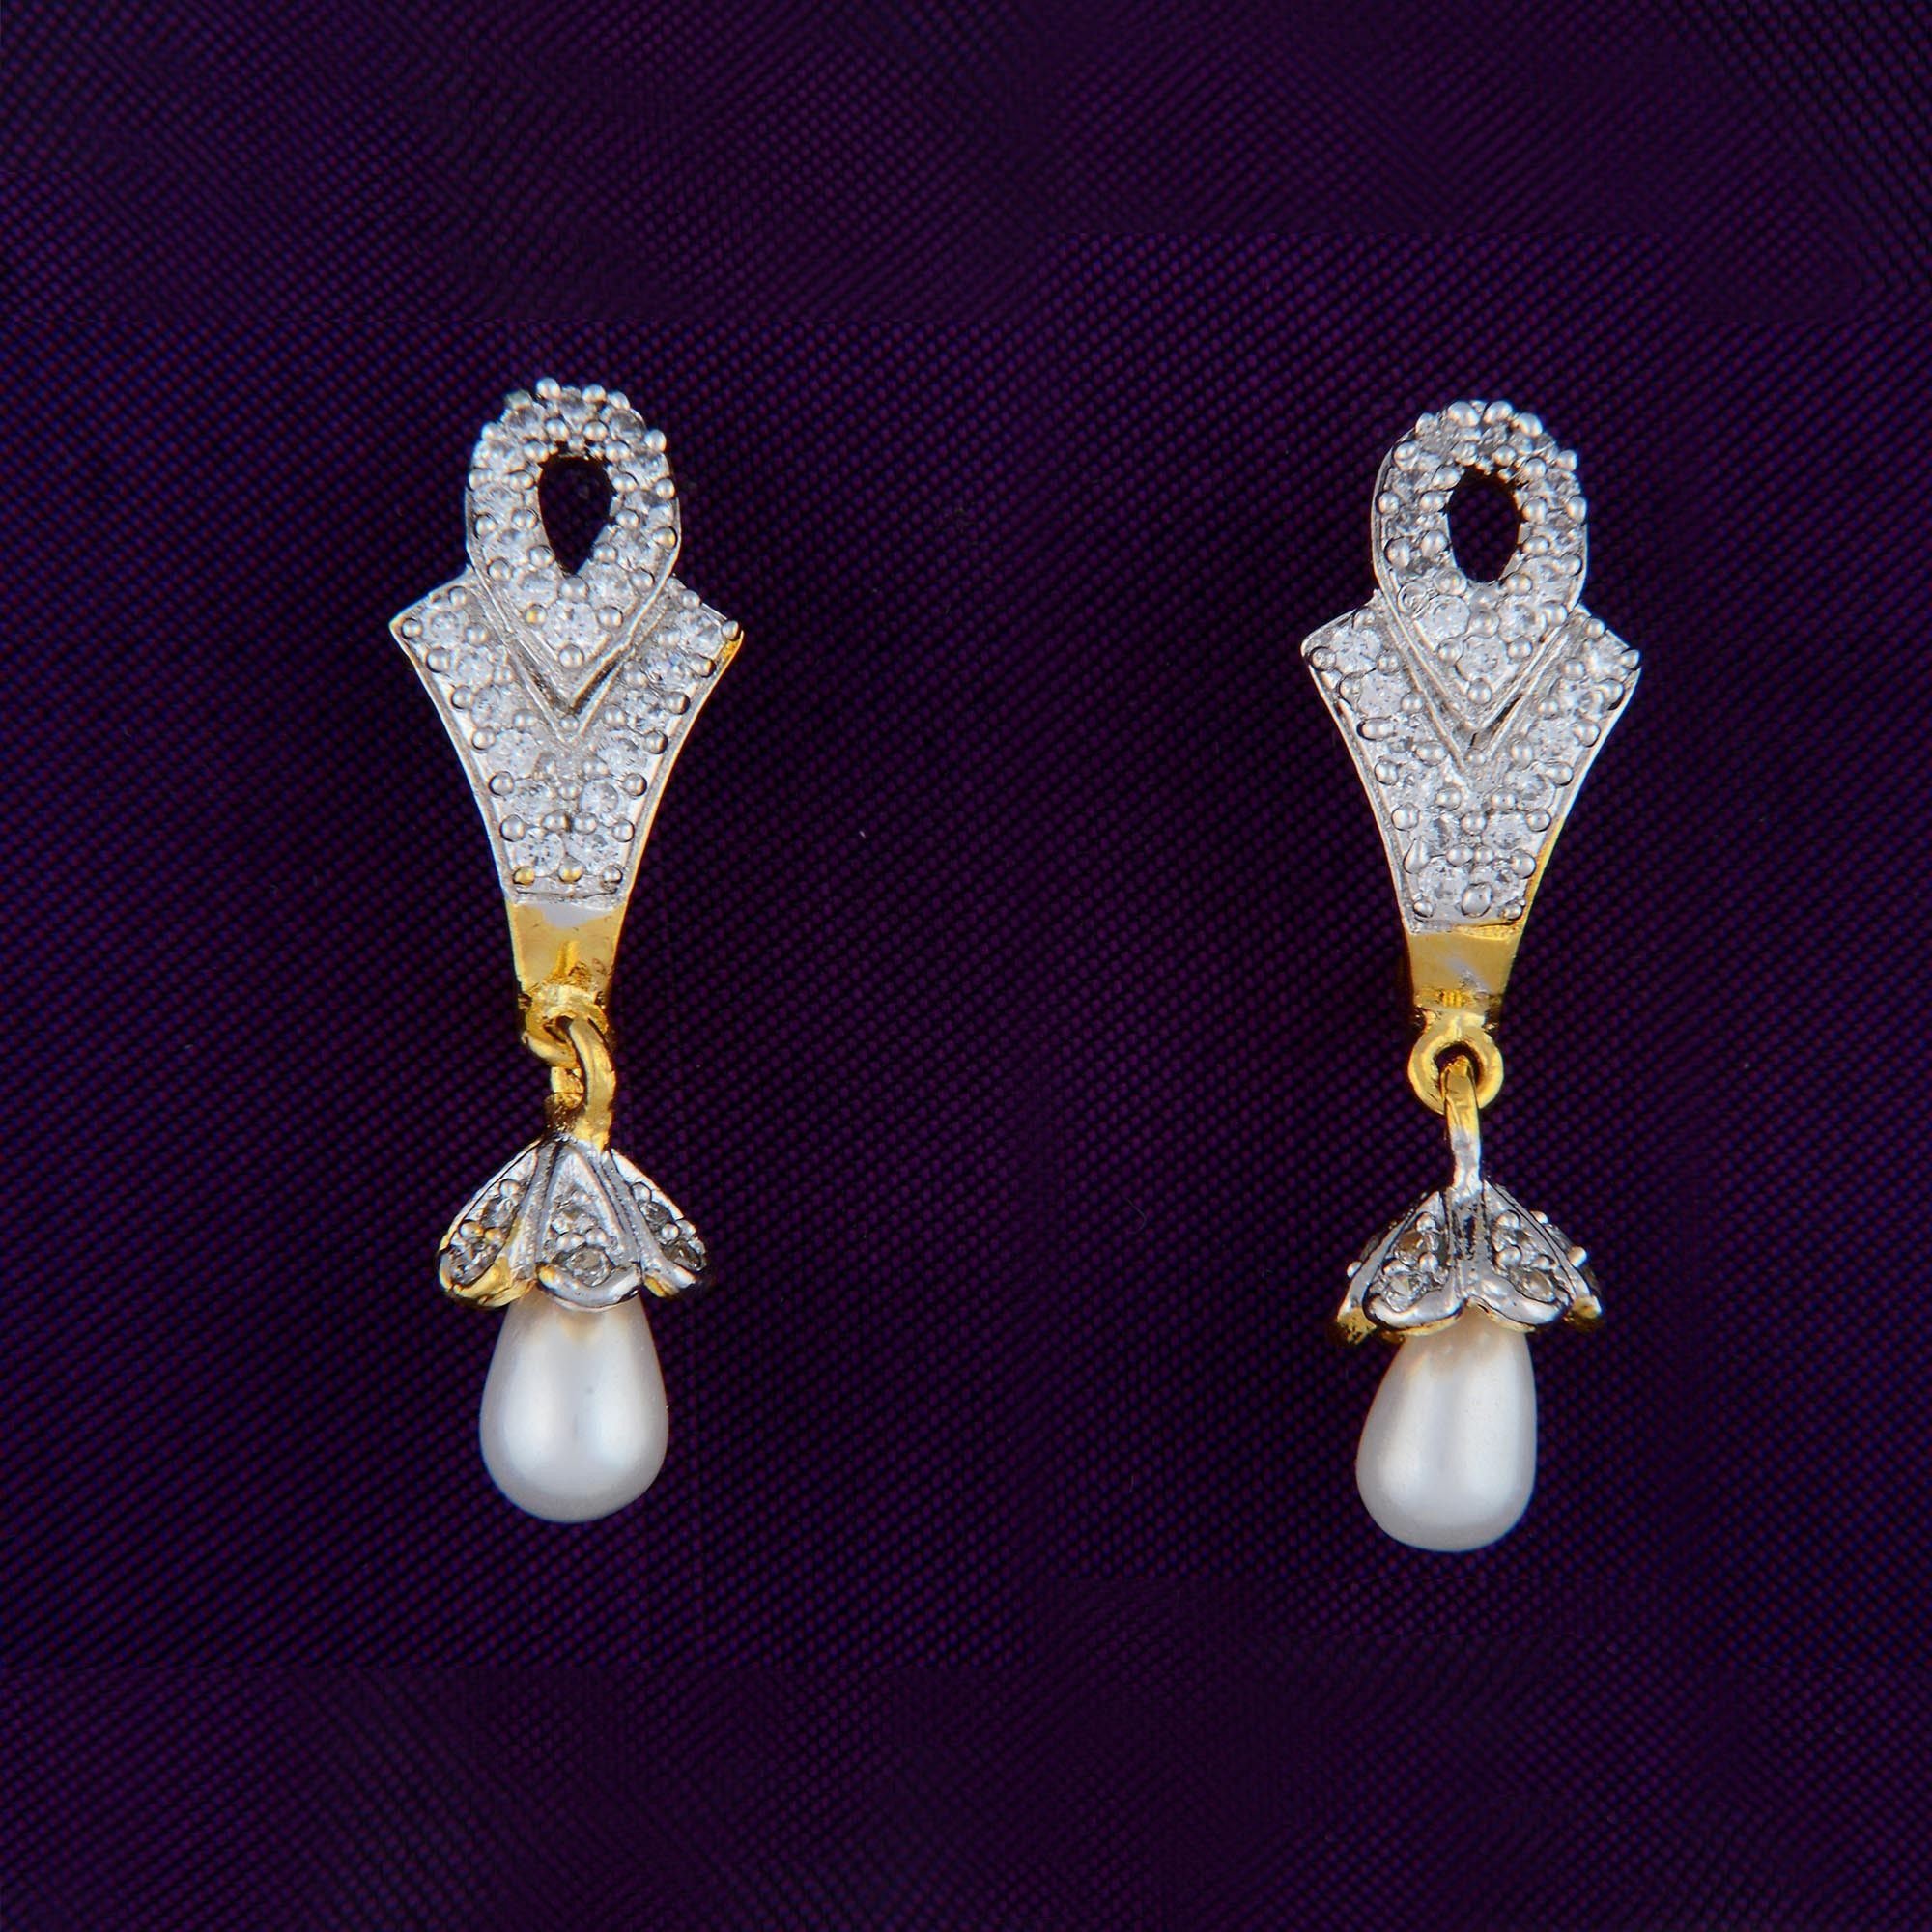 earrings indian wedding traditional in india blog jewelry diamond american jewellery wholesale